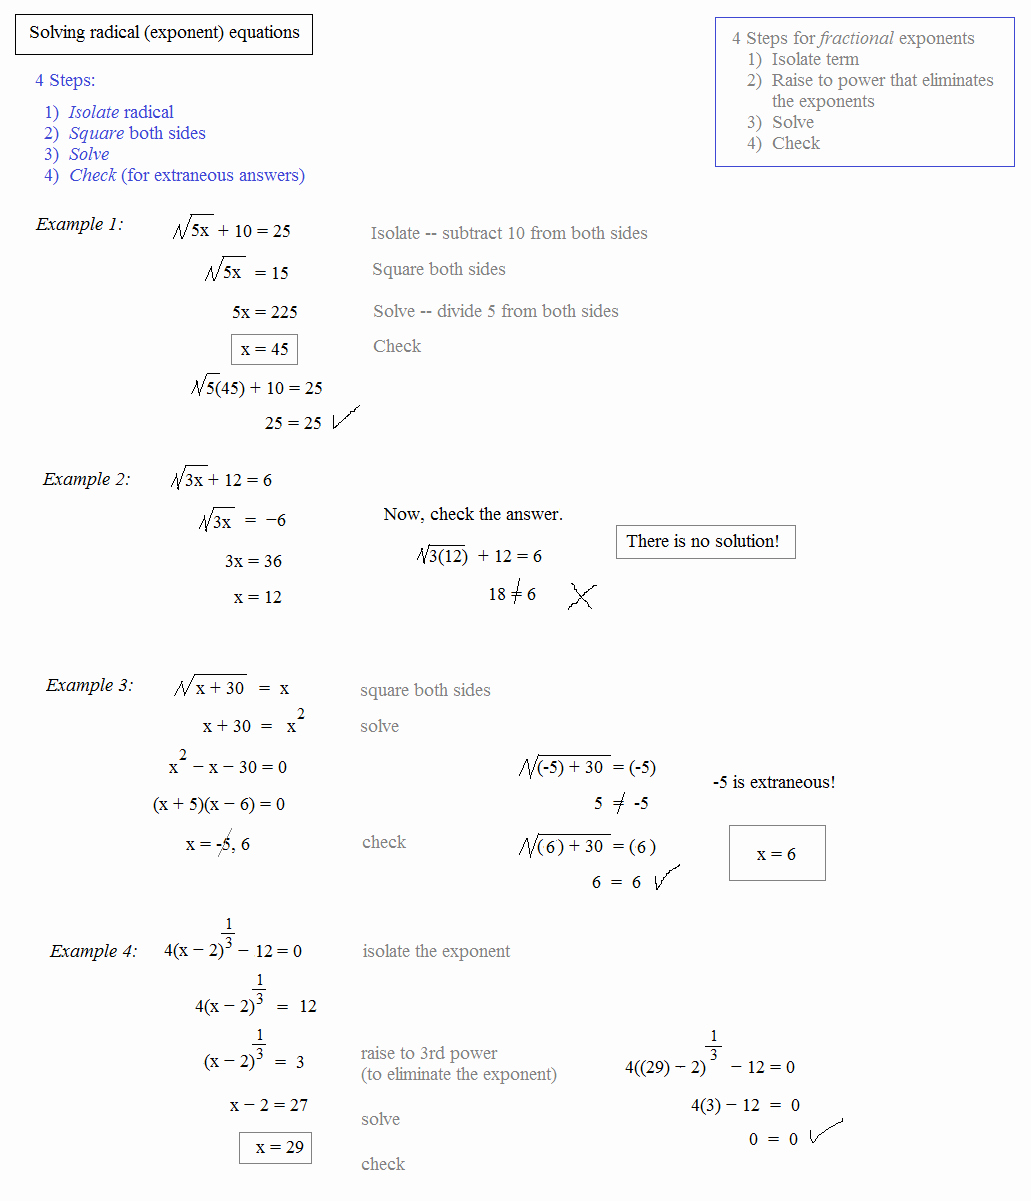 Solving Radical Equations Worksheet Luxury Math Plane Rational Exponents and Radical Equations